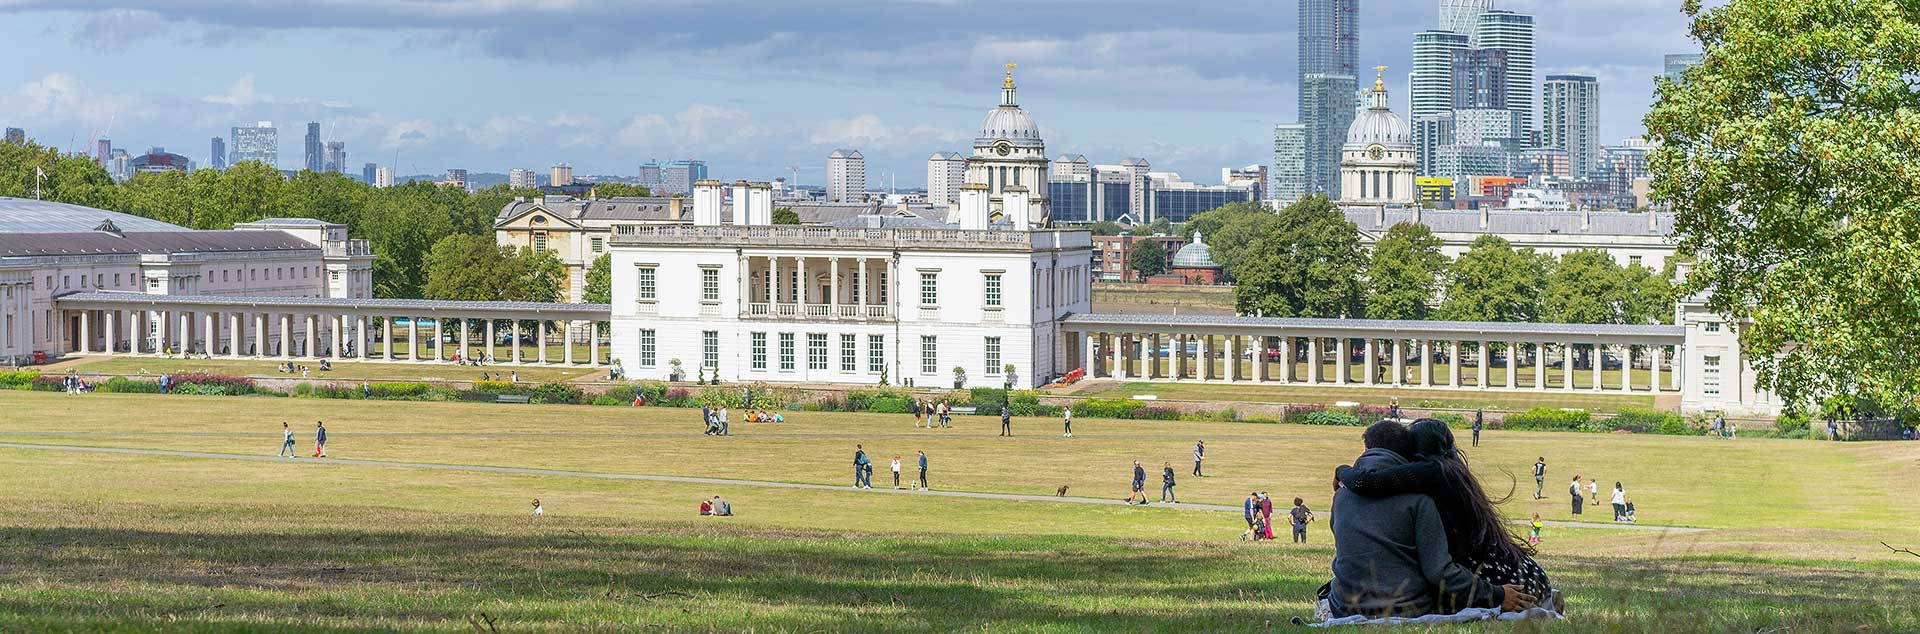 Greenwich - Location